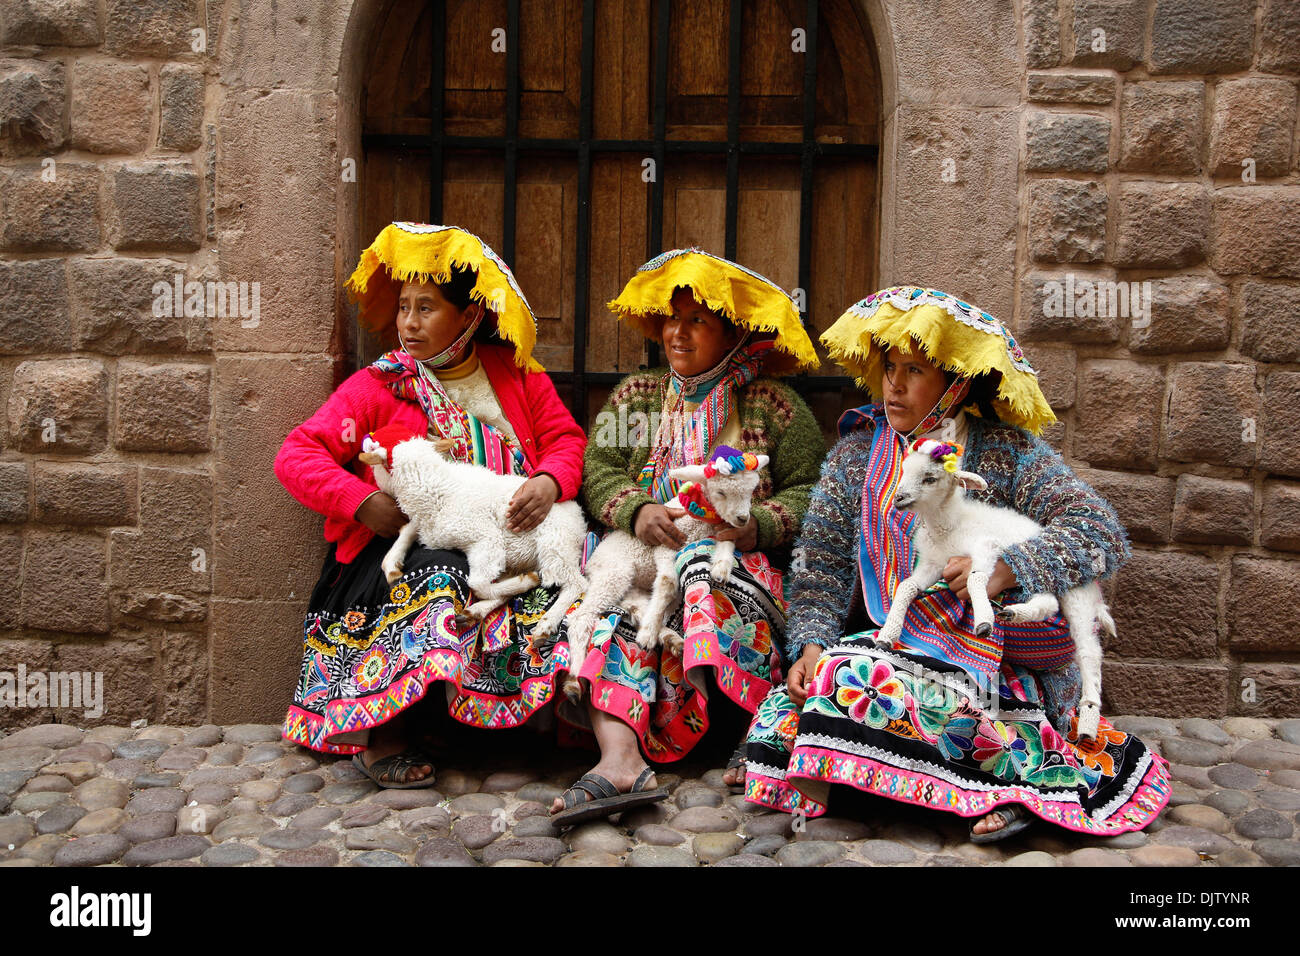 Quechua women in traditional dress at Calle Loreto, Cuzco, Peru. - Stock Image